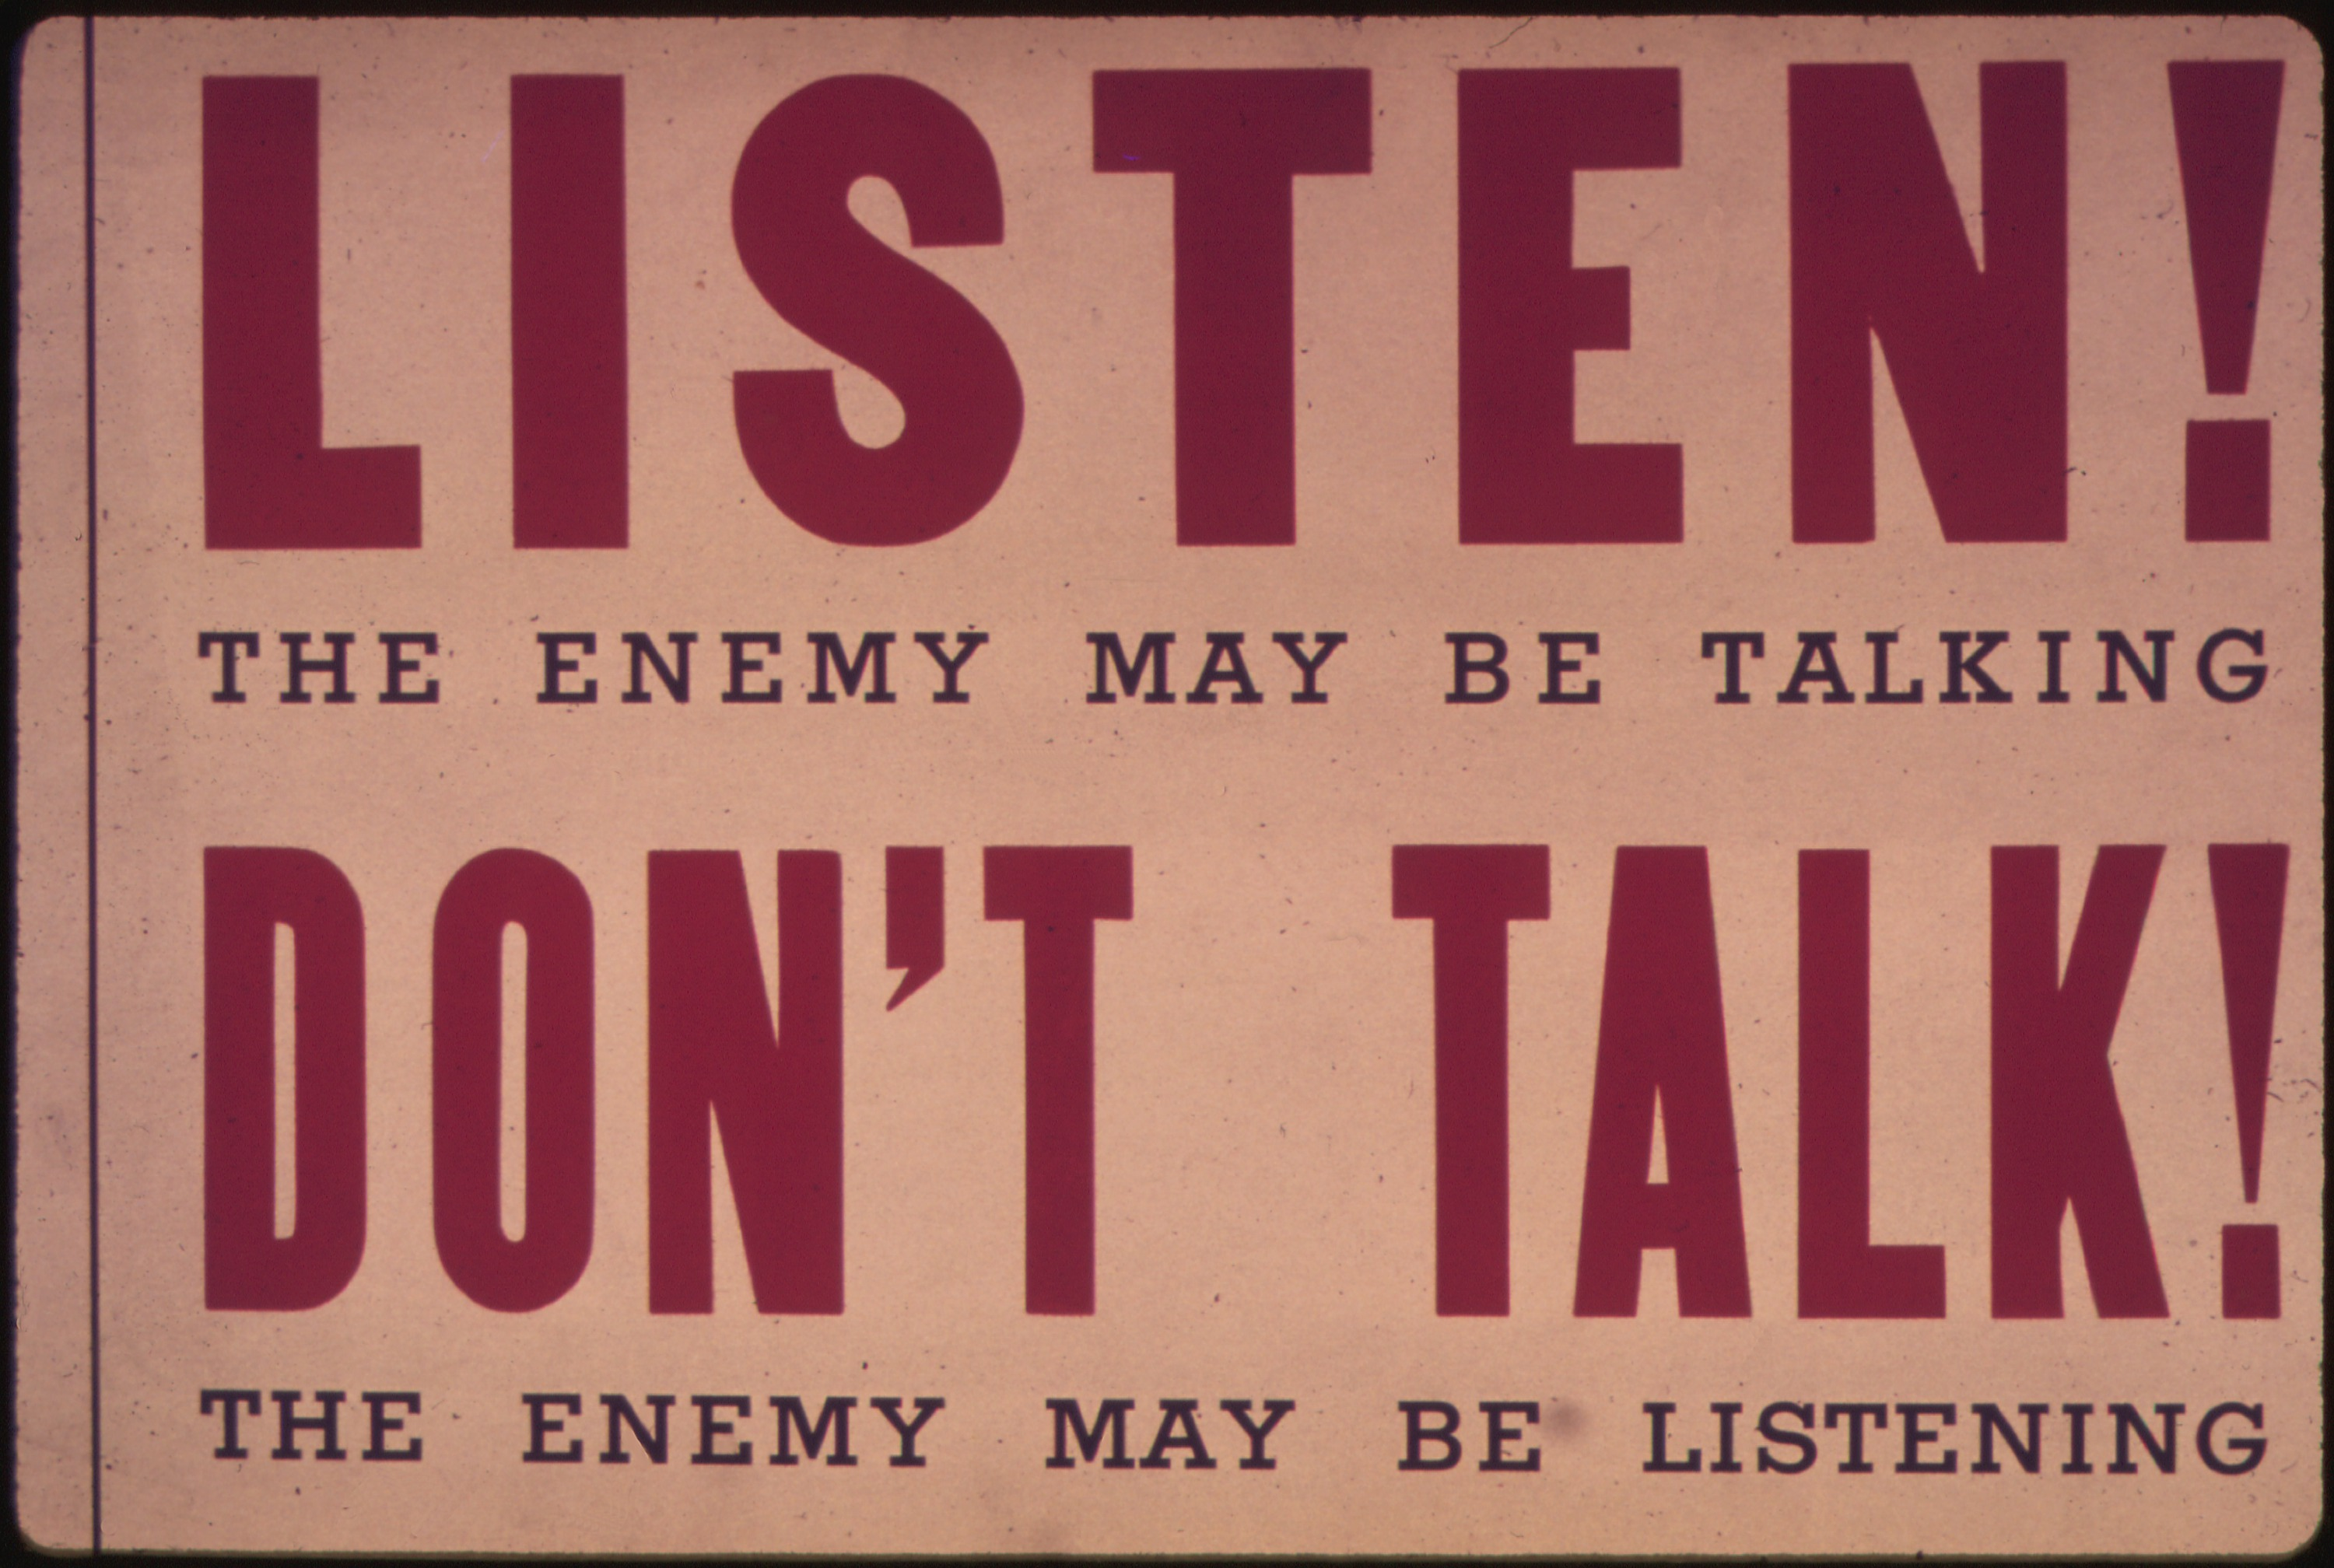 'Listen^_The_enemy_may_be_talking._Don't_talk^_The_enemy_may_be_listening.'_-_NARA_-_514901